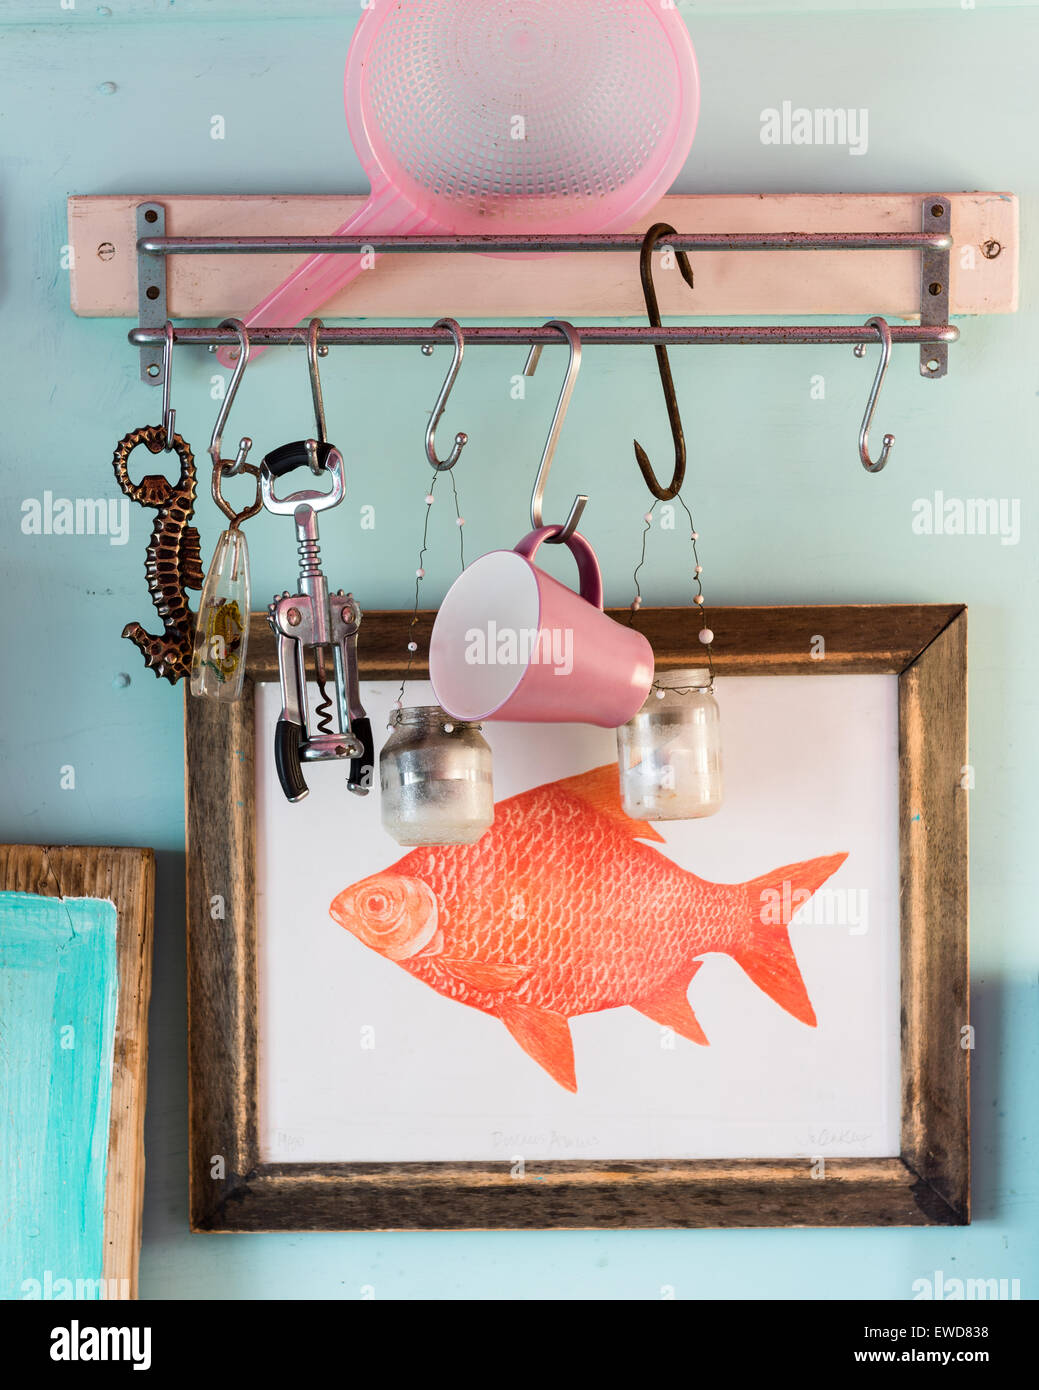 Candle holders and bottle openers hanging from hooks on wall above framed goldfish artwork - Stock Image